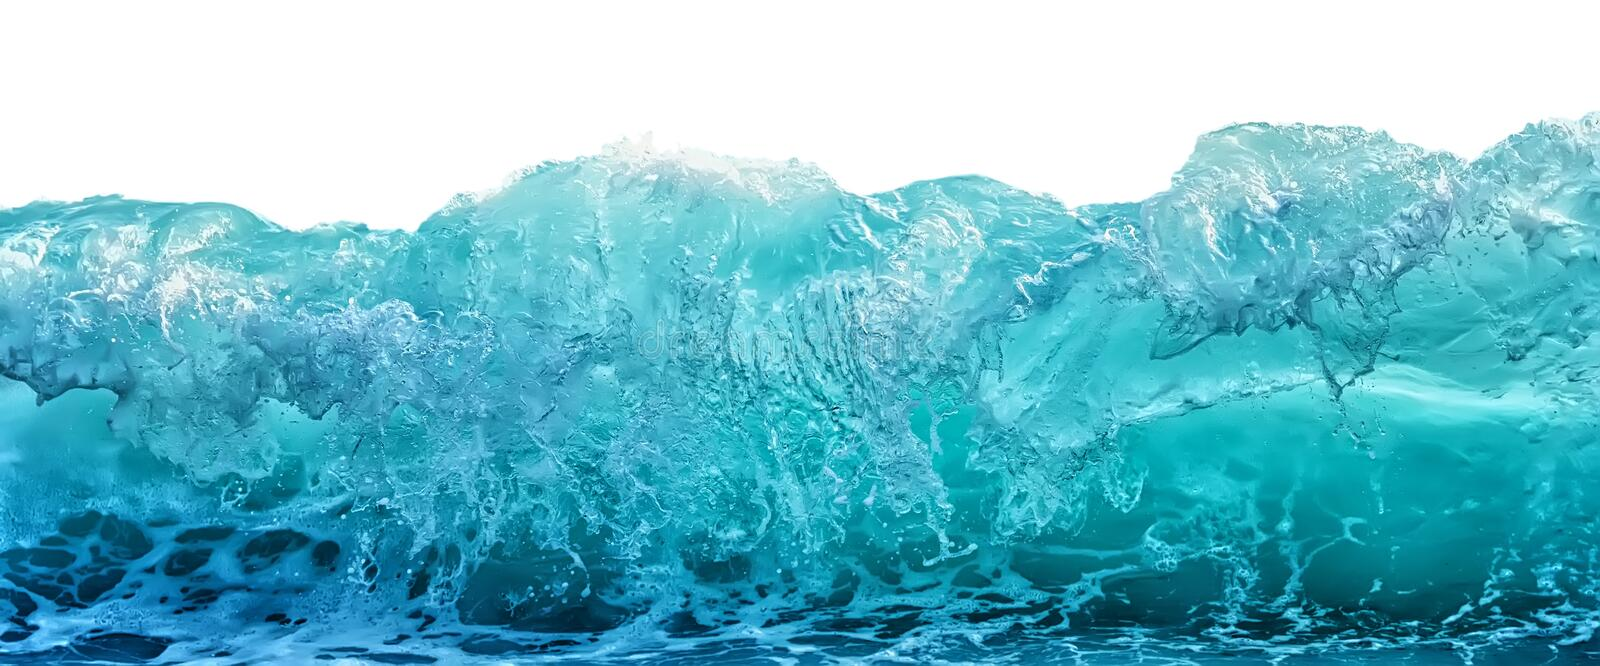 Big blue stormy sea wave isolated on white background. Climate nature concept. Front view.  royalty free stock image